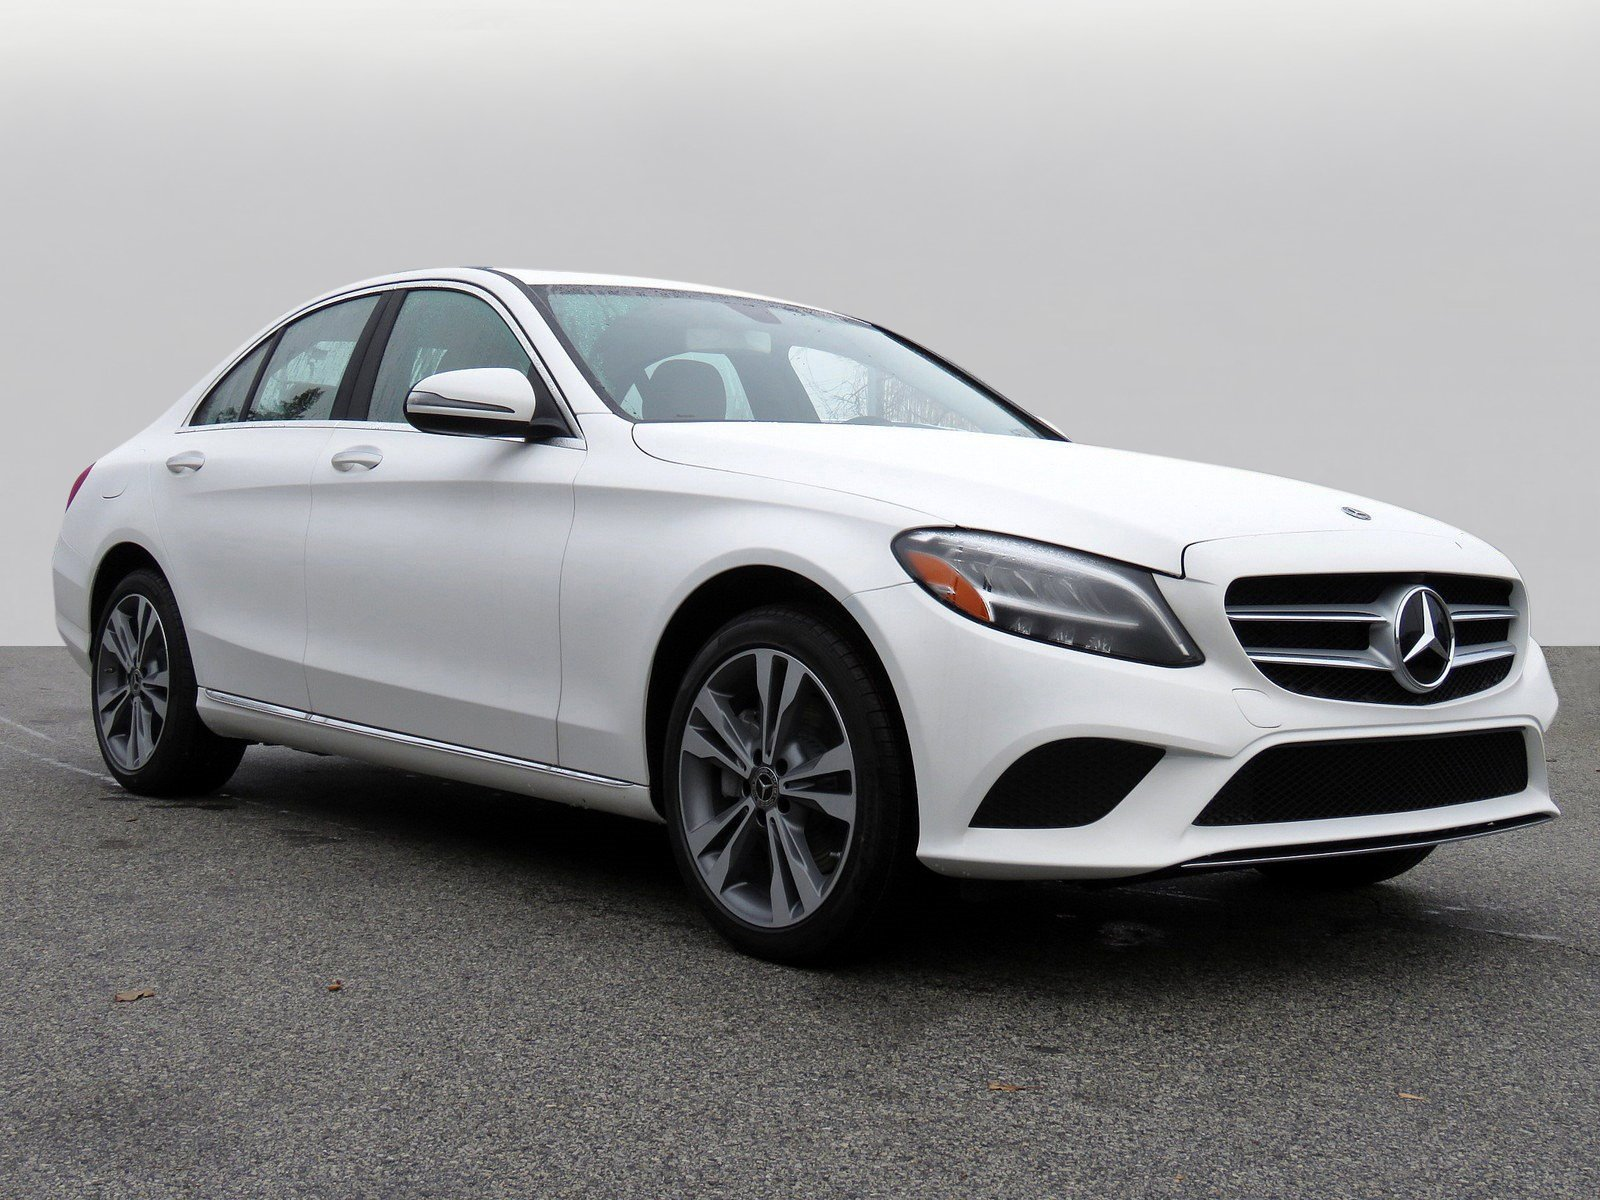 Mercedes Benz West Chester Pa >> New 2019 Mercedes Benz C Class C 300 4dr Car In West Chester